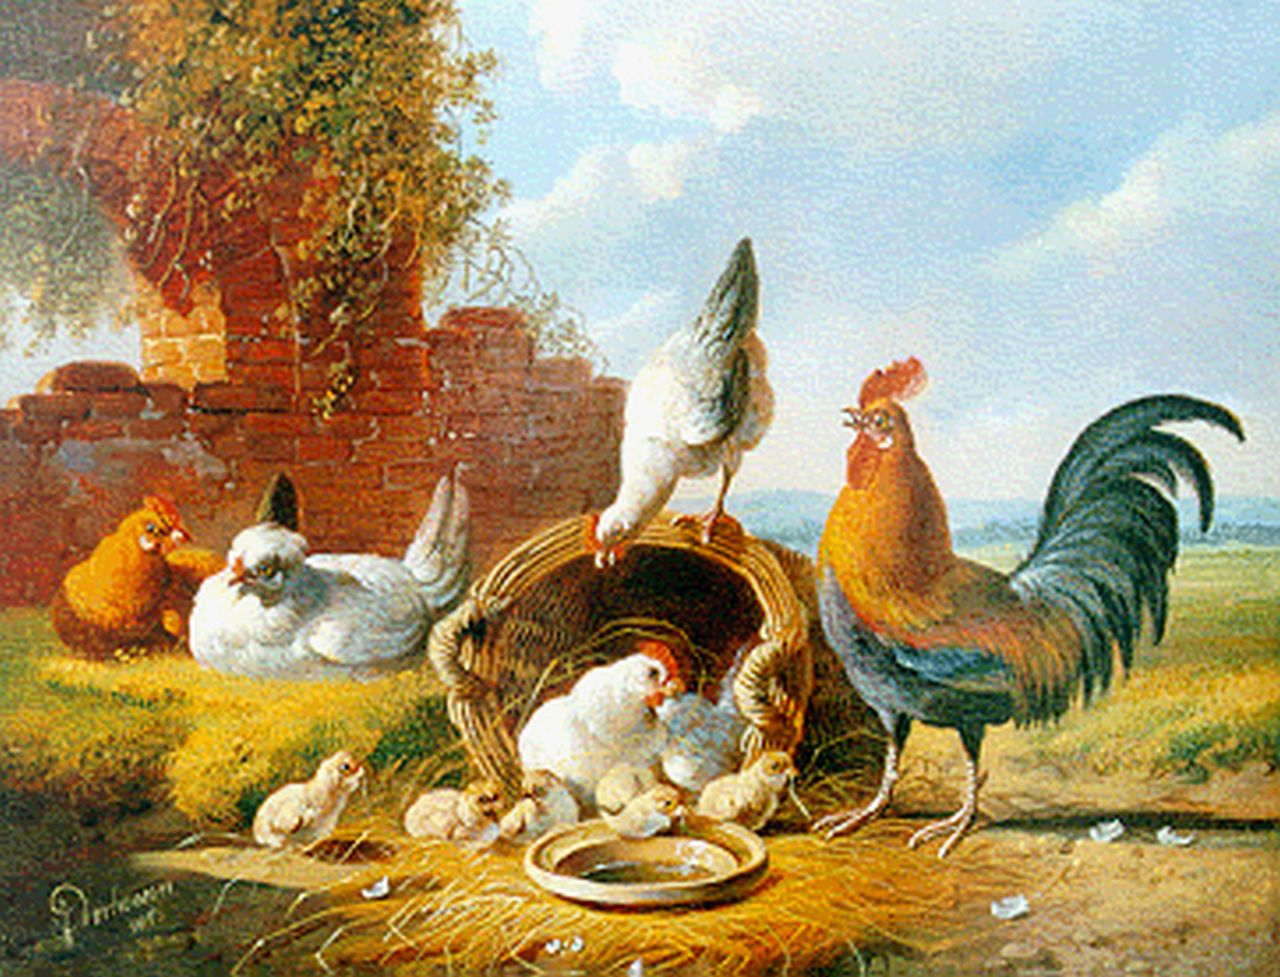 Verhoesen A.  | Albertus Verhoesen, Poultry by a ruin, oil on panel 18.6 x 24.1 cm, signed l.l. and dated 1876